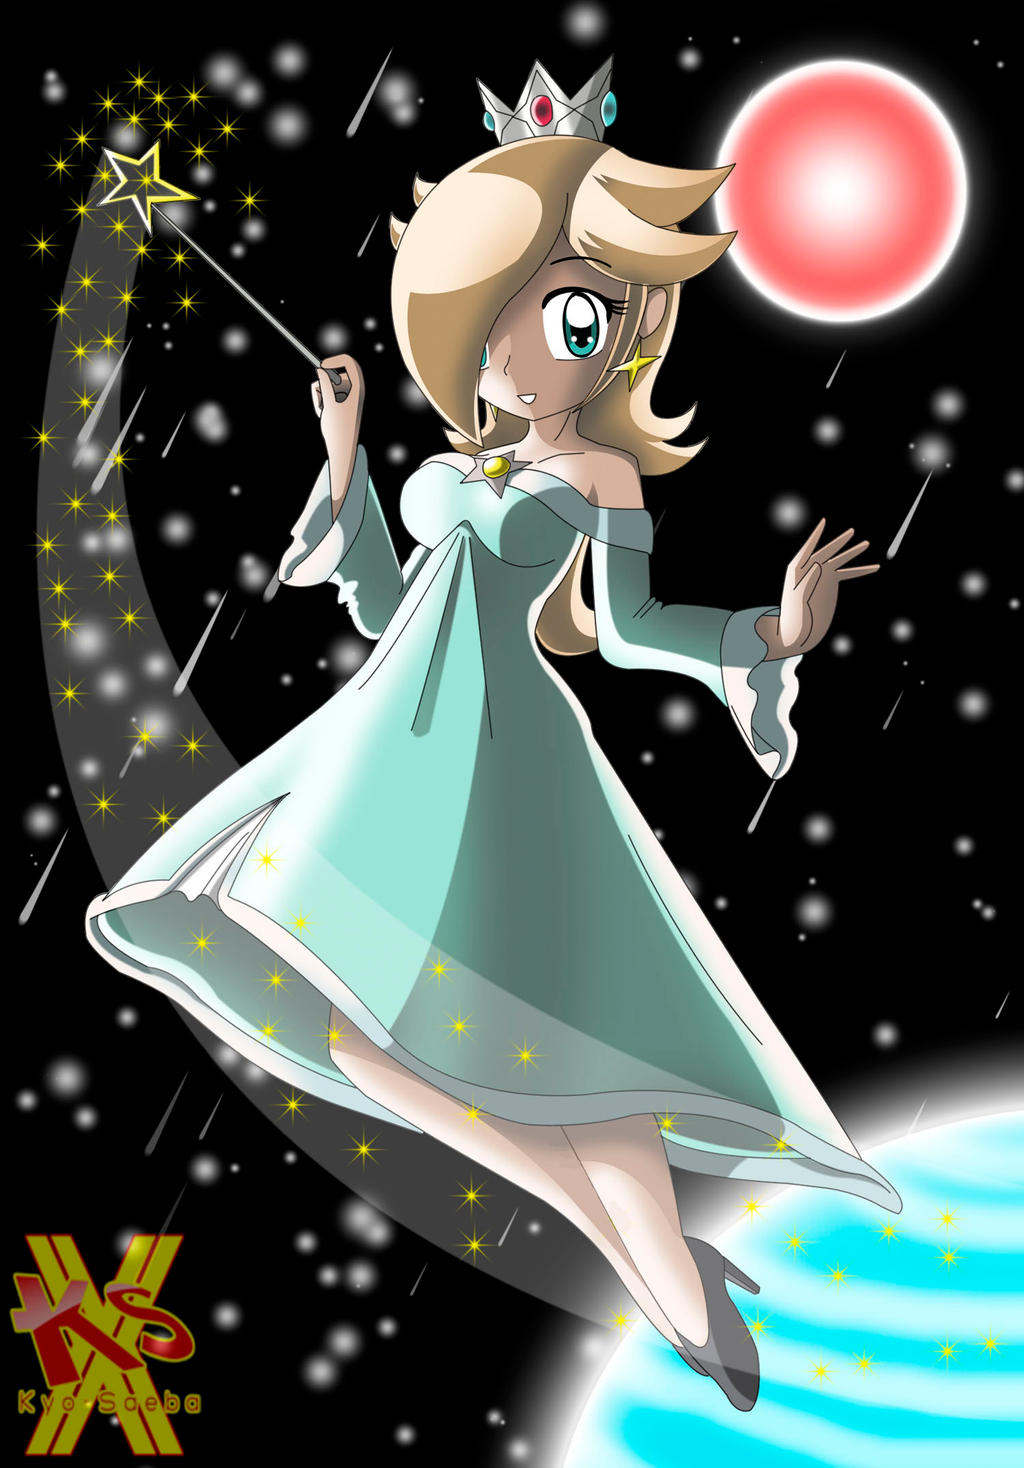 Princess Rosalina by MRSaeba-San